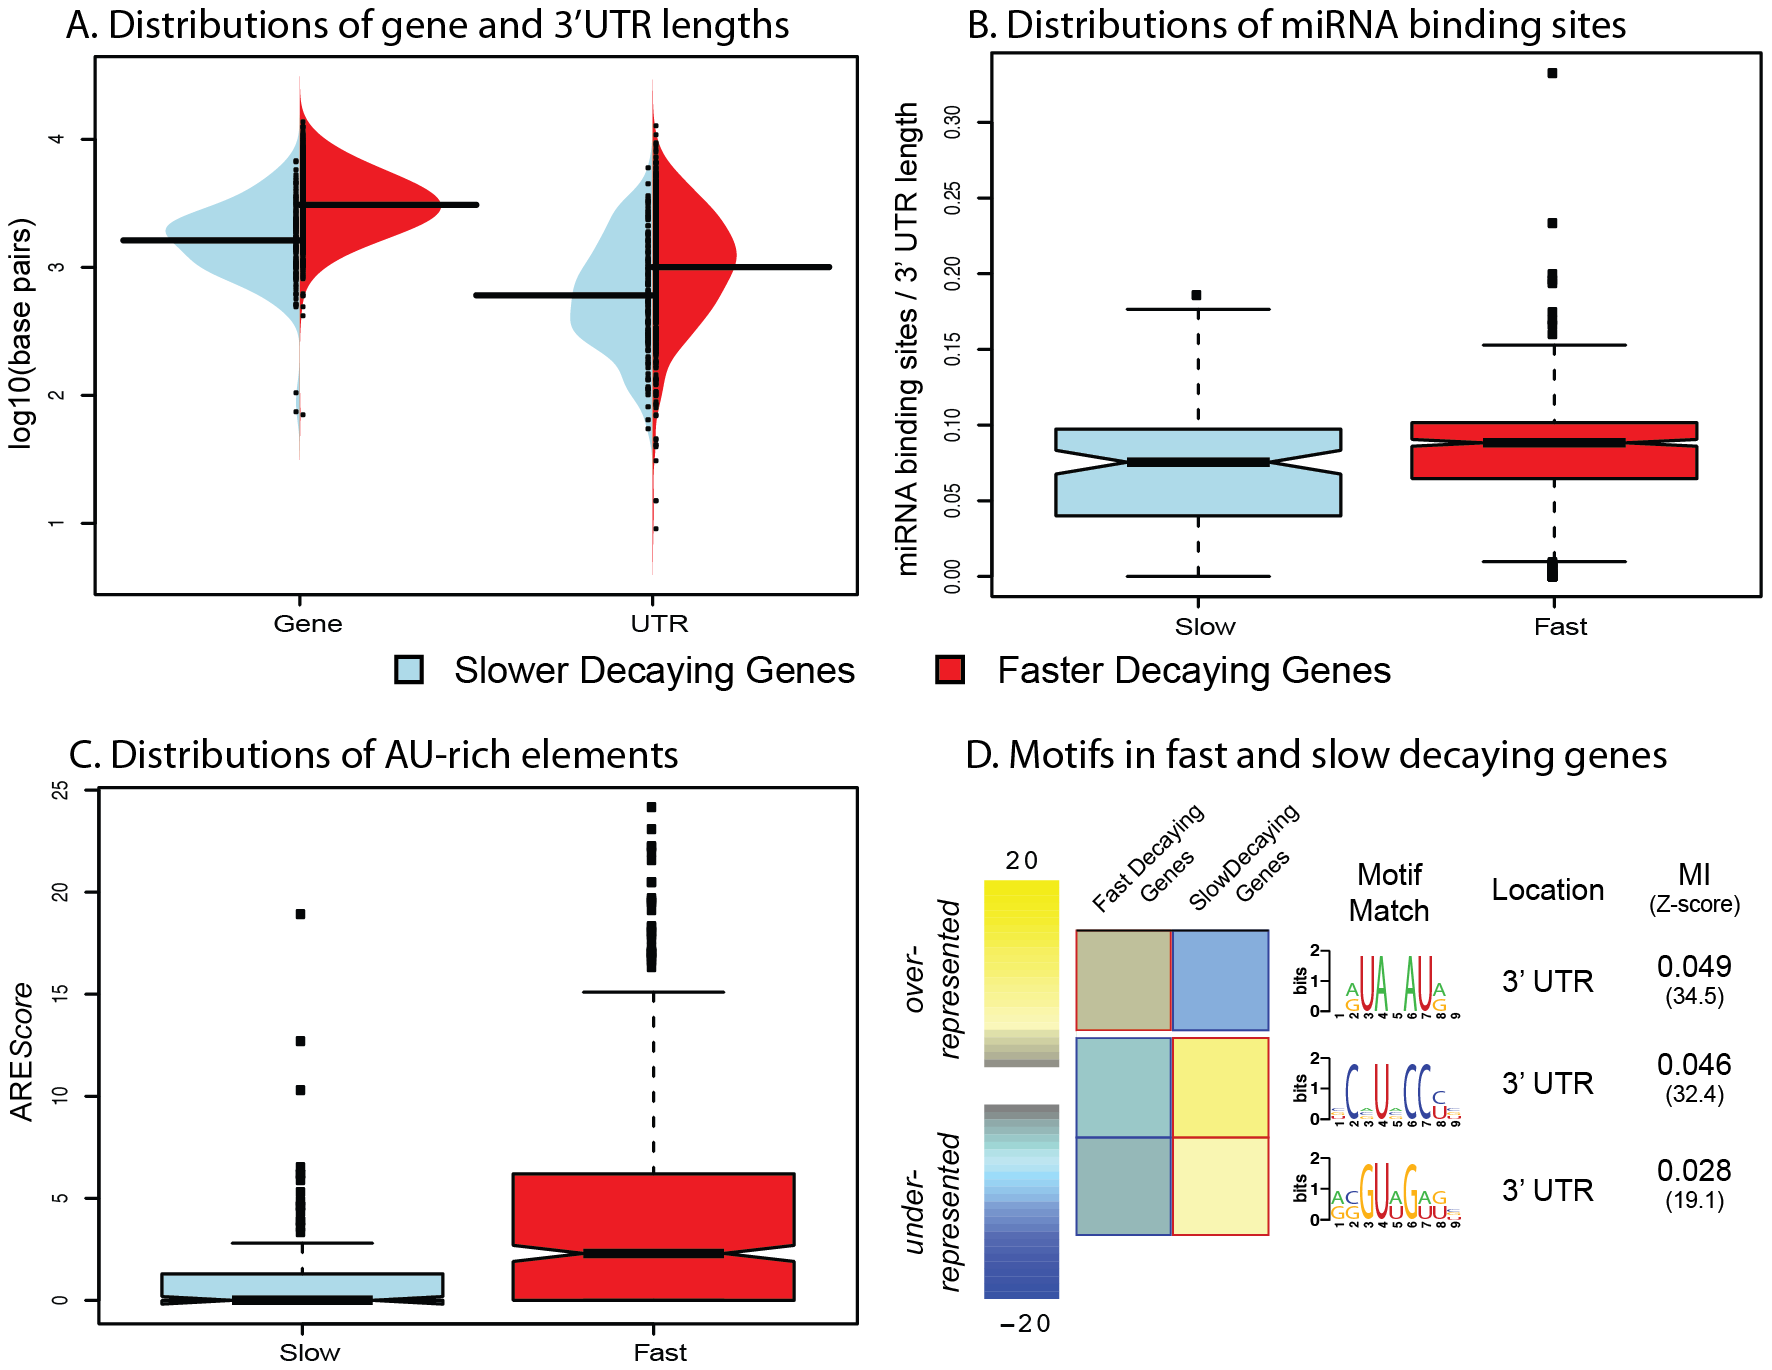 Genomic features influencing variation in decay rates across genes.